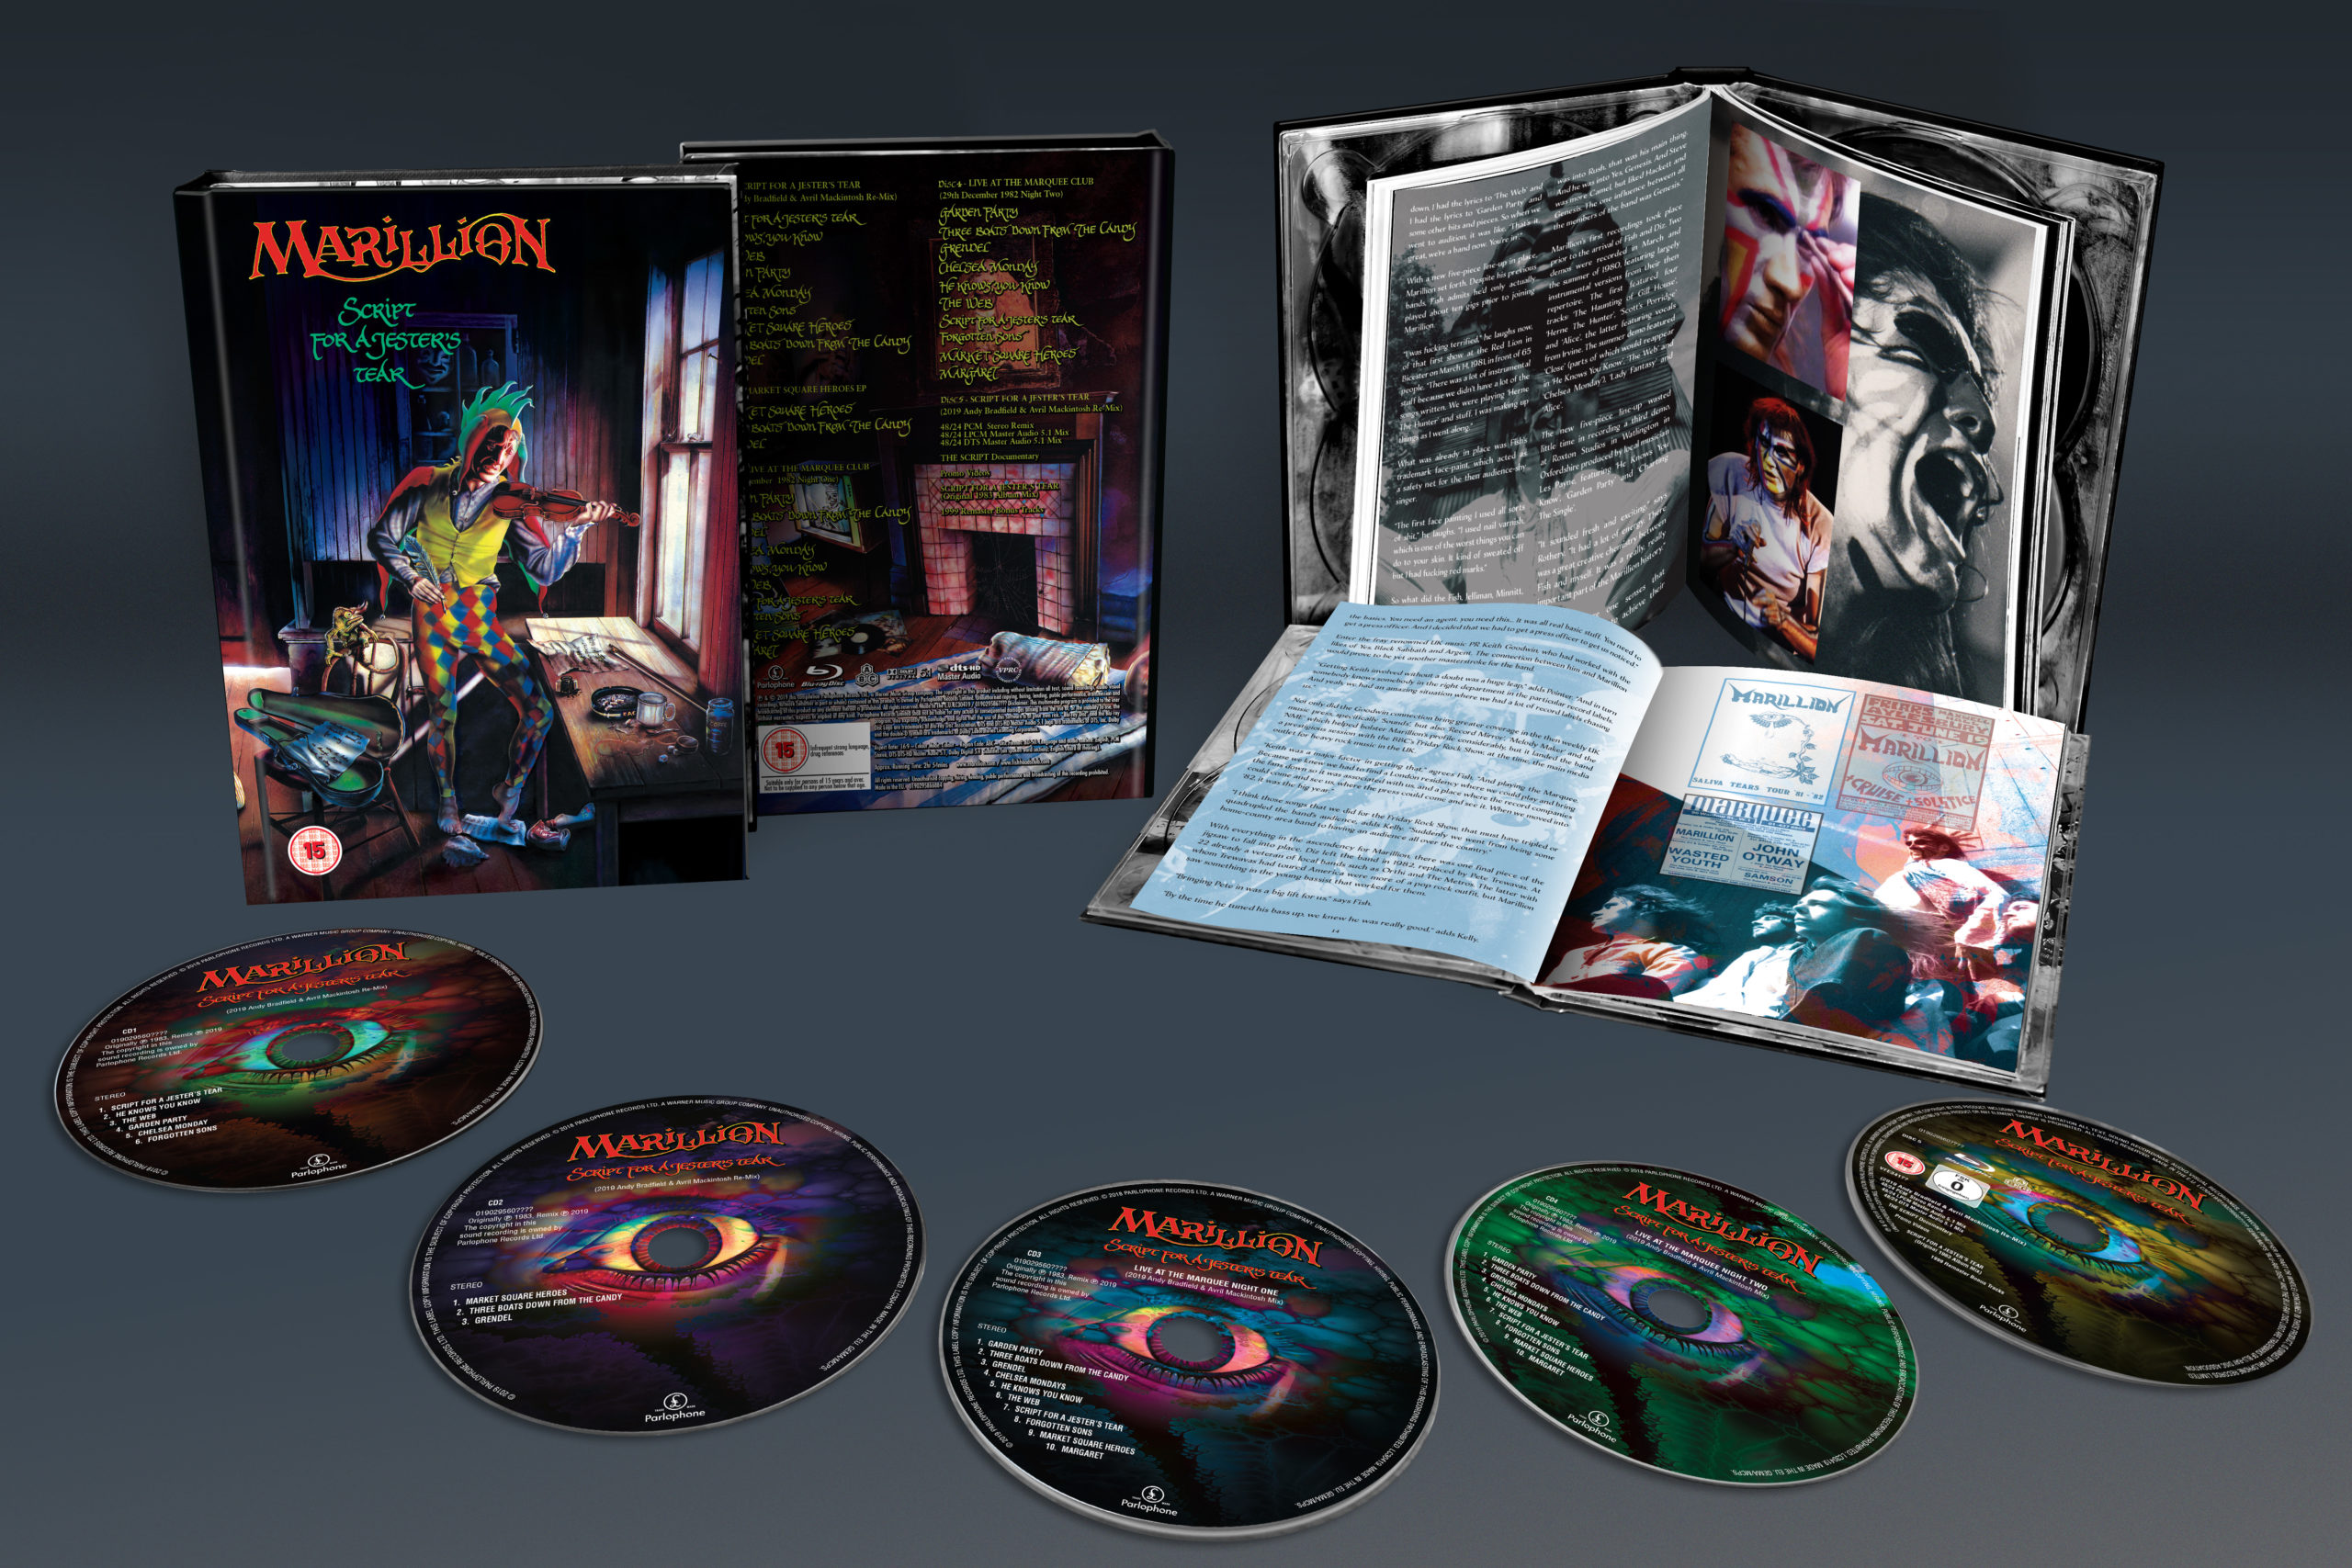 Marillion / Script For A Jester's Tear 4CD+blu-ray reissue